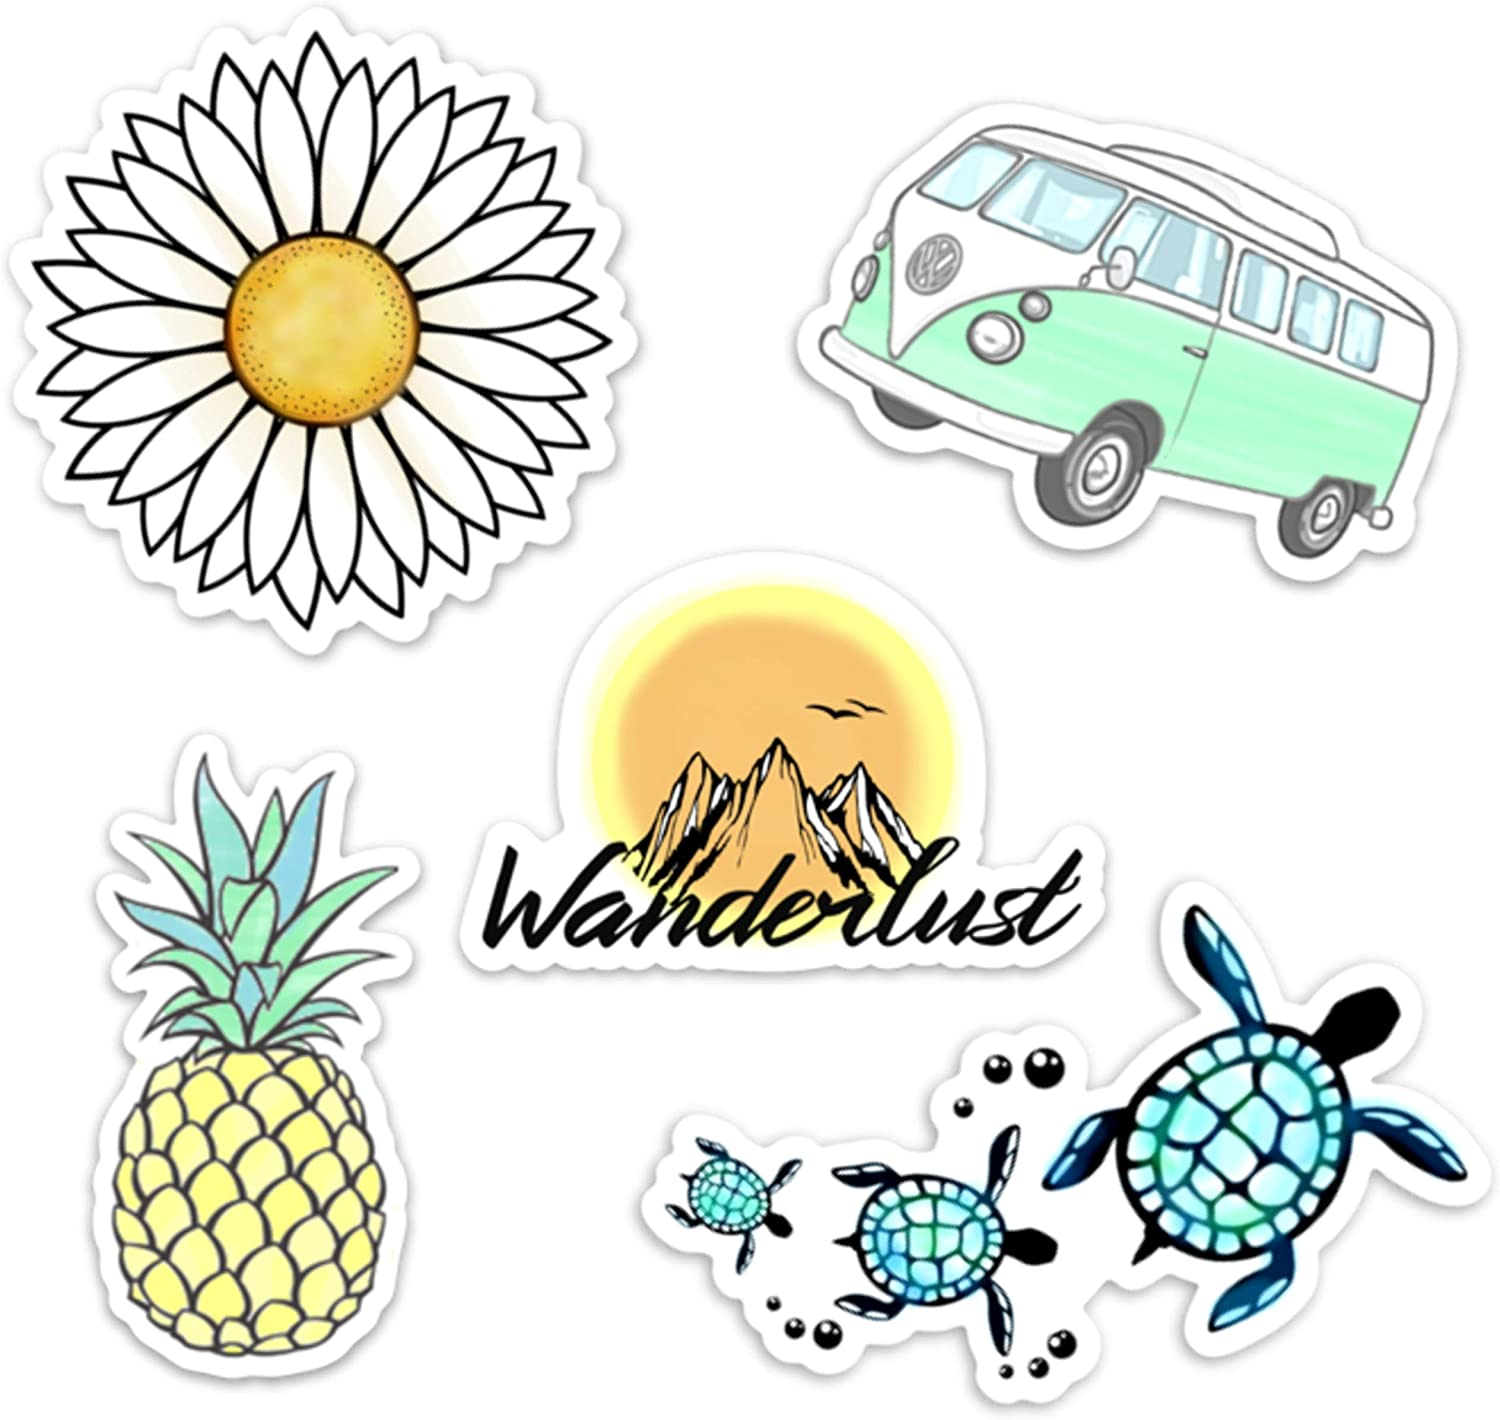 Stickers for Water Bottles– (5 Pack) Cute Waterproof and Perfect for Laptop, Hydro Flask, Yeti, Car, Phone-Trendy Decal Water Bottle Stickers-Quality Vinyl VSCO Aesthetic Sticker Pack-Made in US